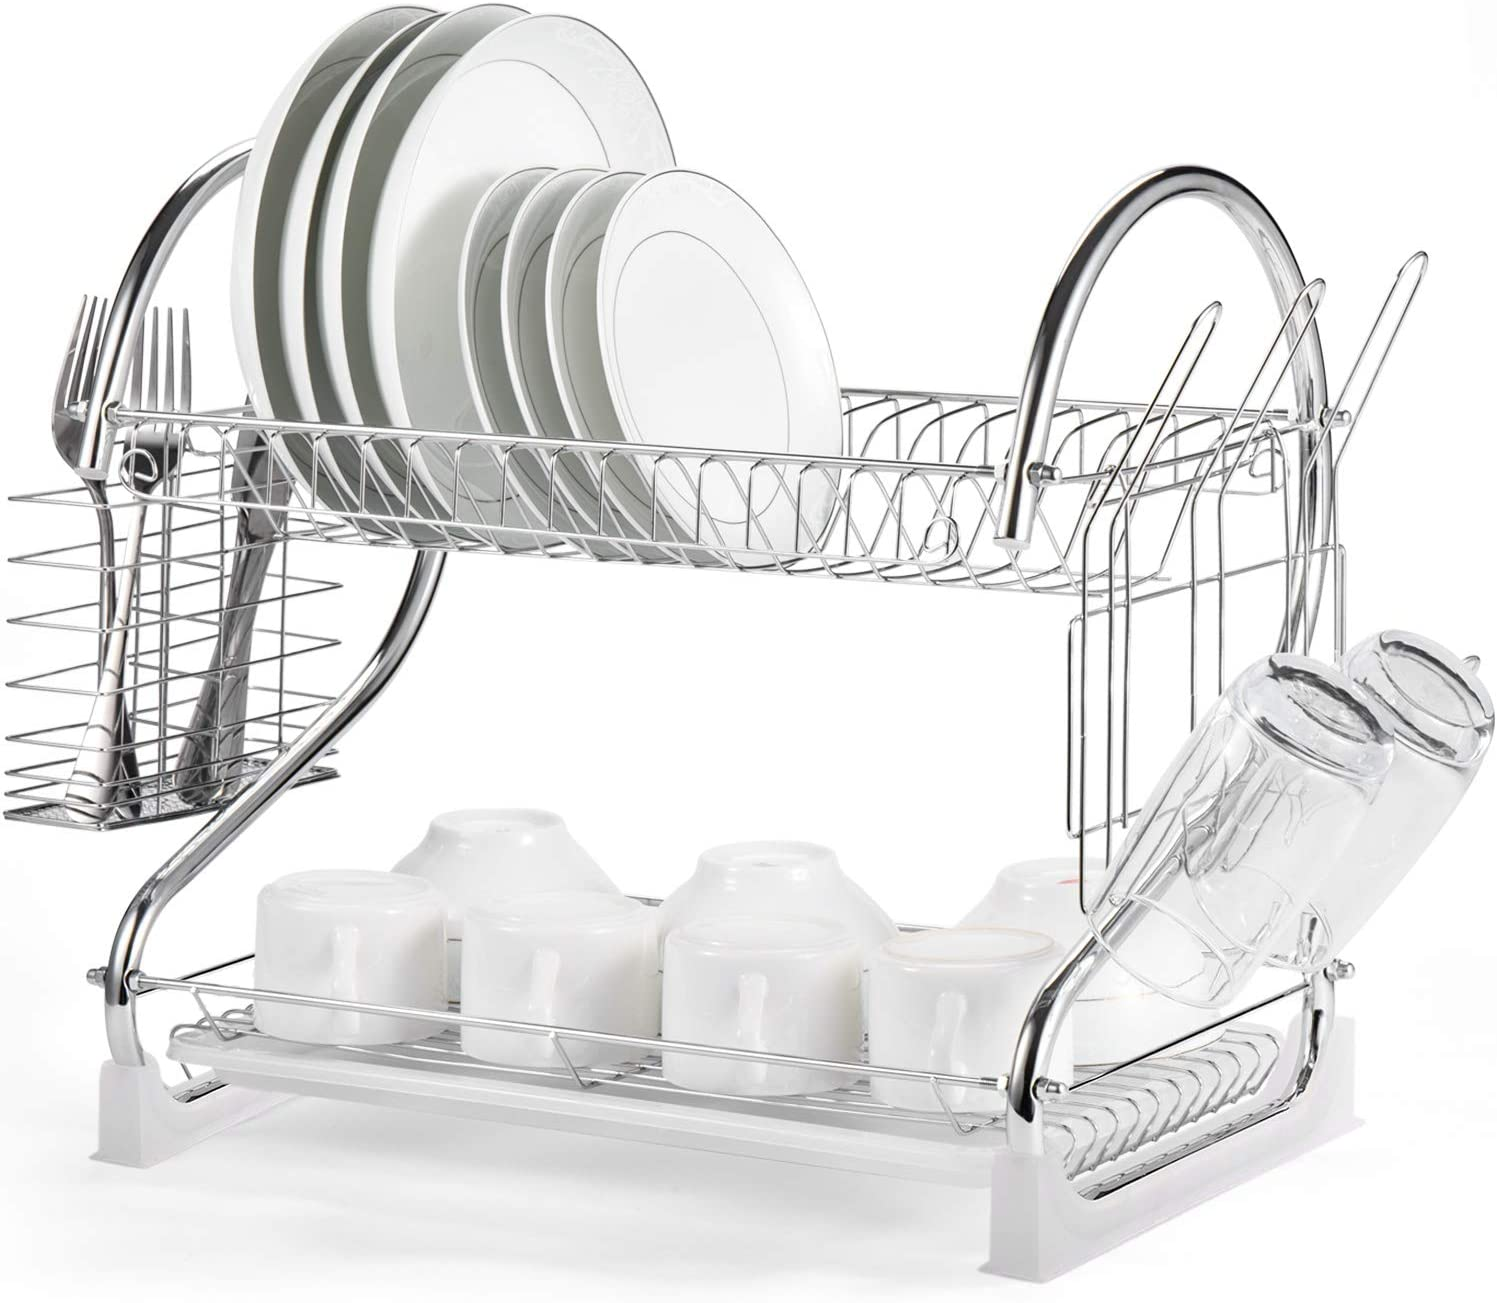 Dish Drying Rack, iSPECLE 2 Tier Dish Rack with Utensil Holder, Cutting Board Holder and Dish Drainer for Kitchen Counter Top, Plated Chrome Dish Dryer Silver 17.0 X 9.7 X 14.6 inch